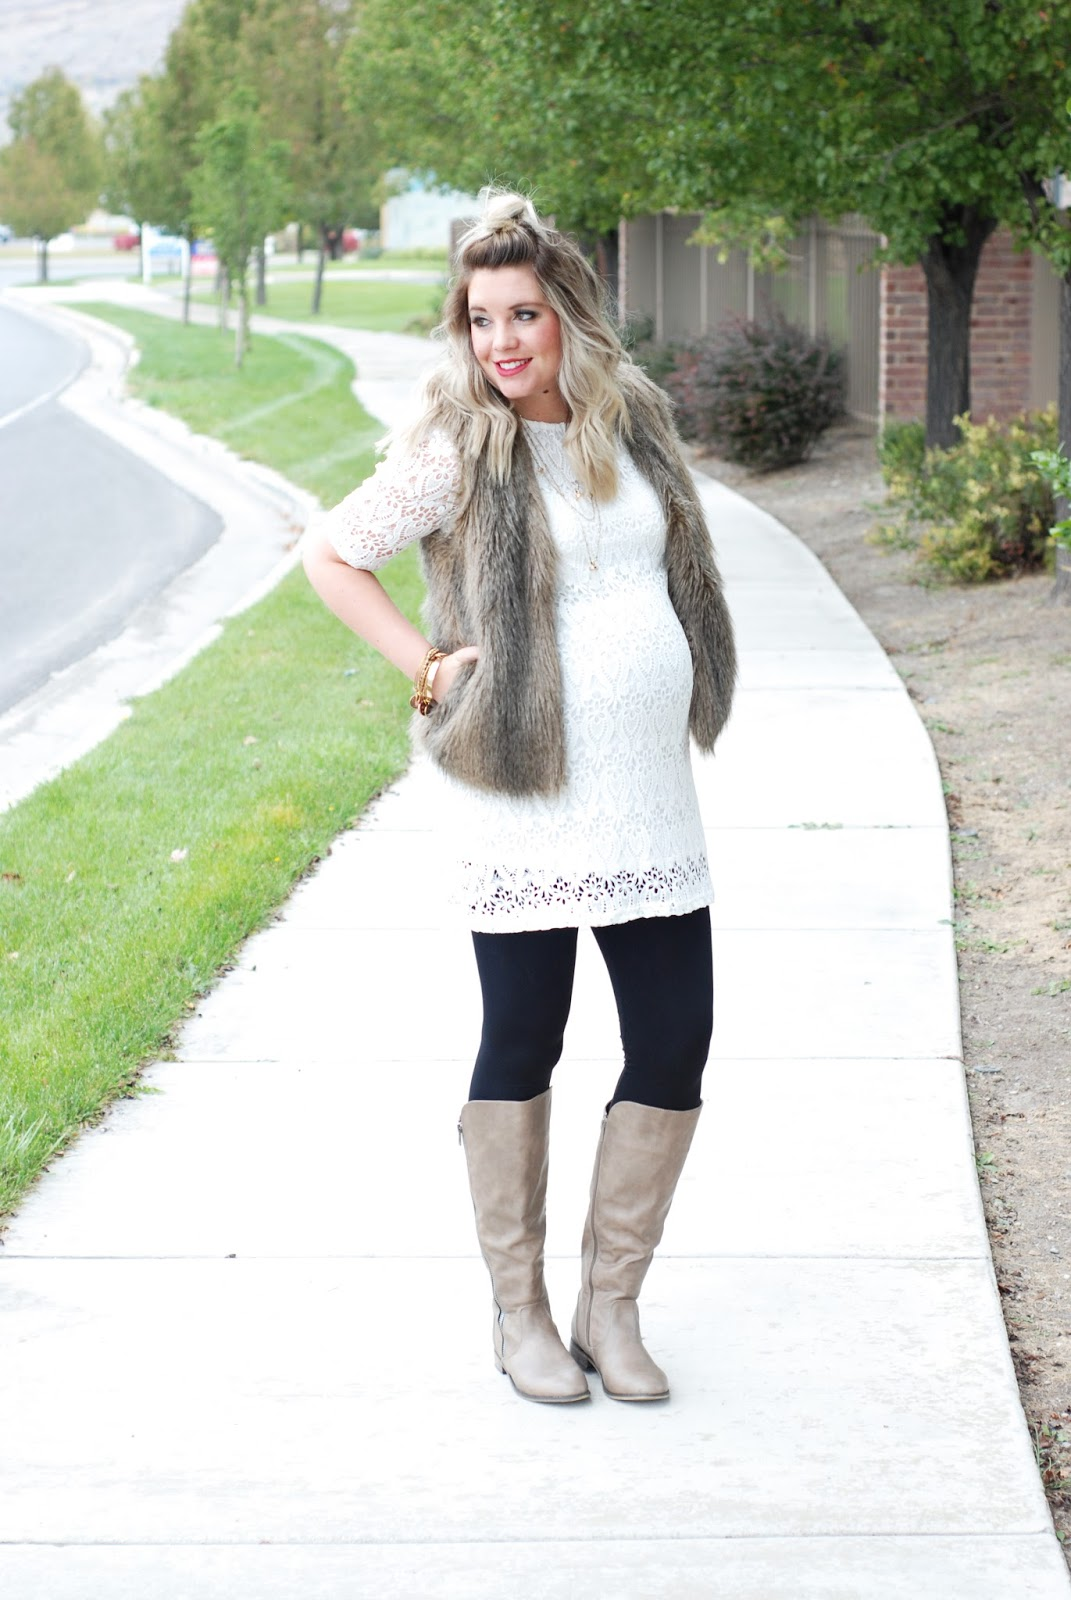 Journey Five, Lace Tunic, Utah Fashion Blogger, Maternity Outfit, Maternity Style, Pregnant Outfit, Pregnant Style 5